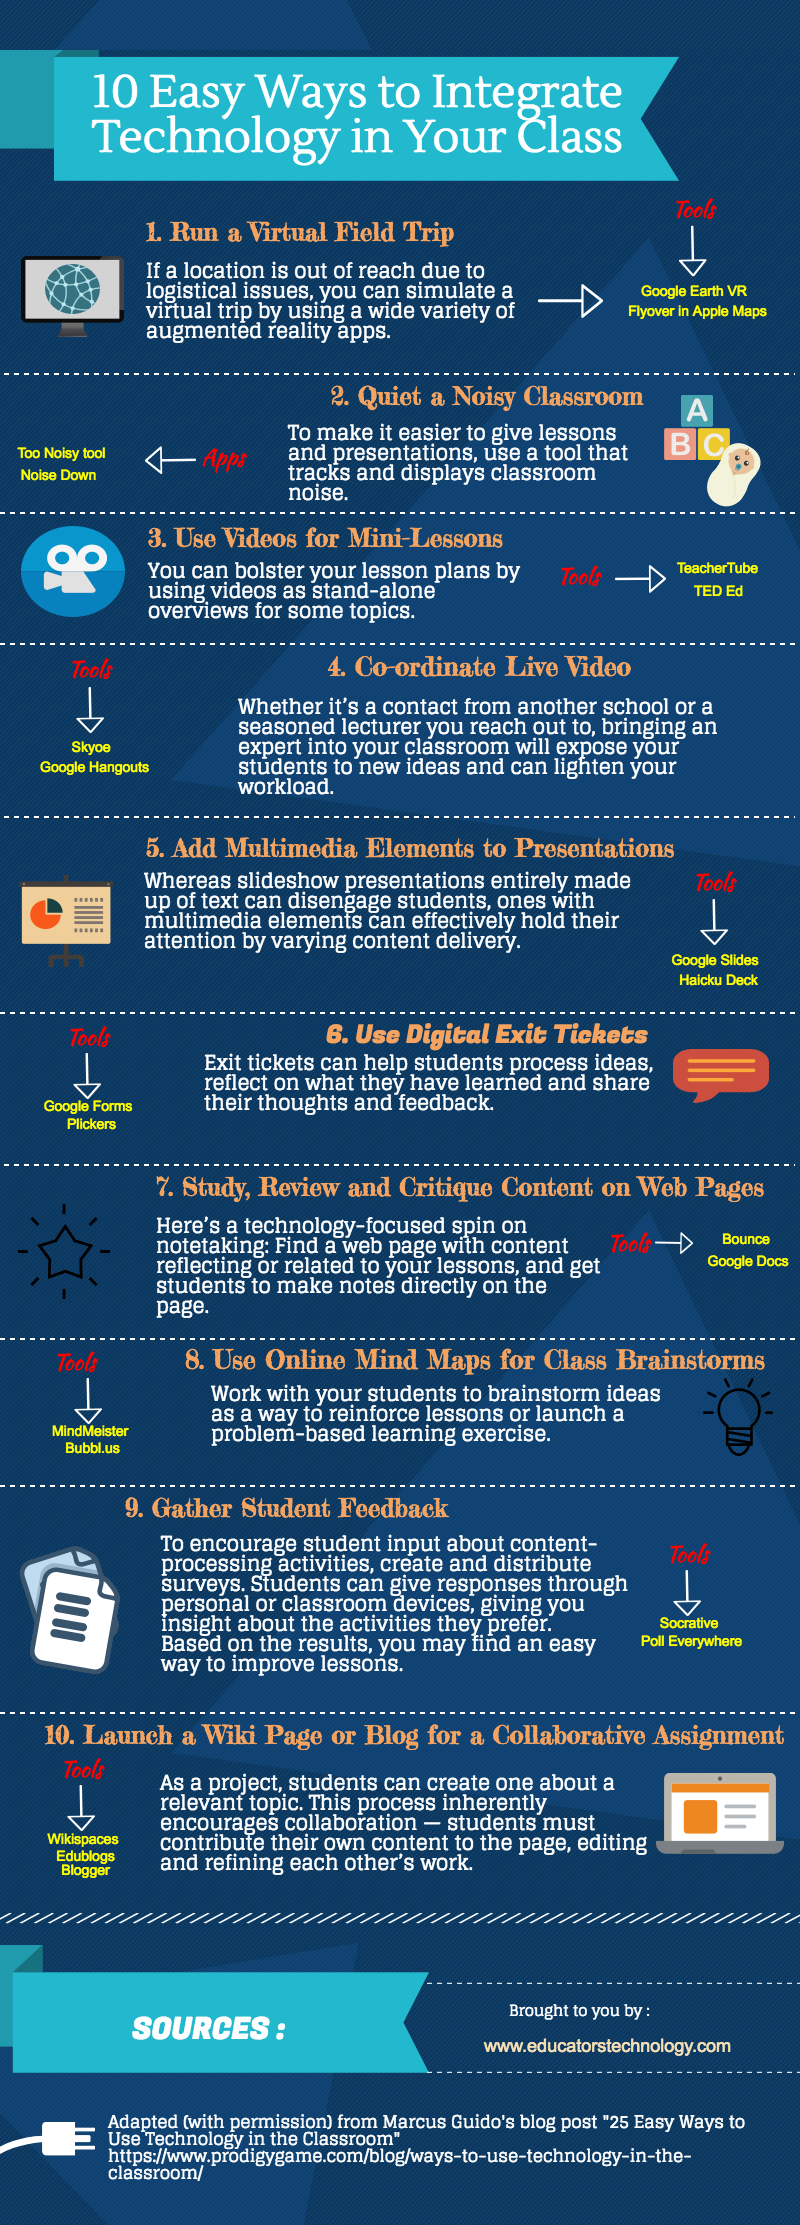 Effective Integration of Technology in Teaching- Important Tips for Teachers